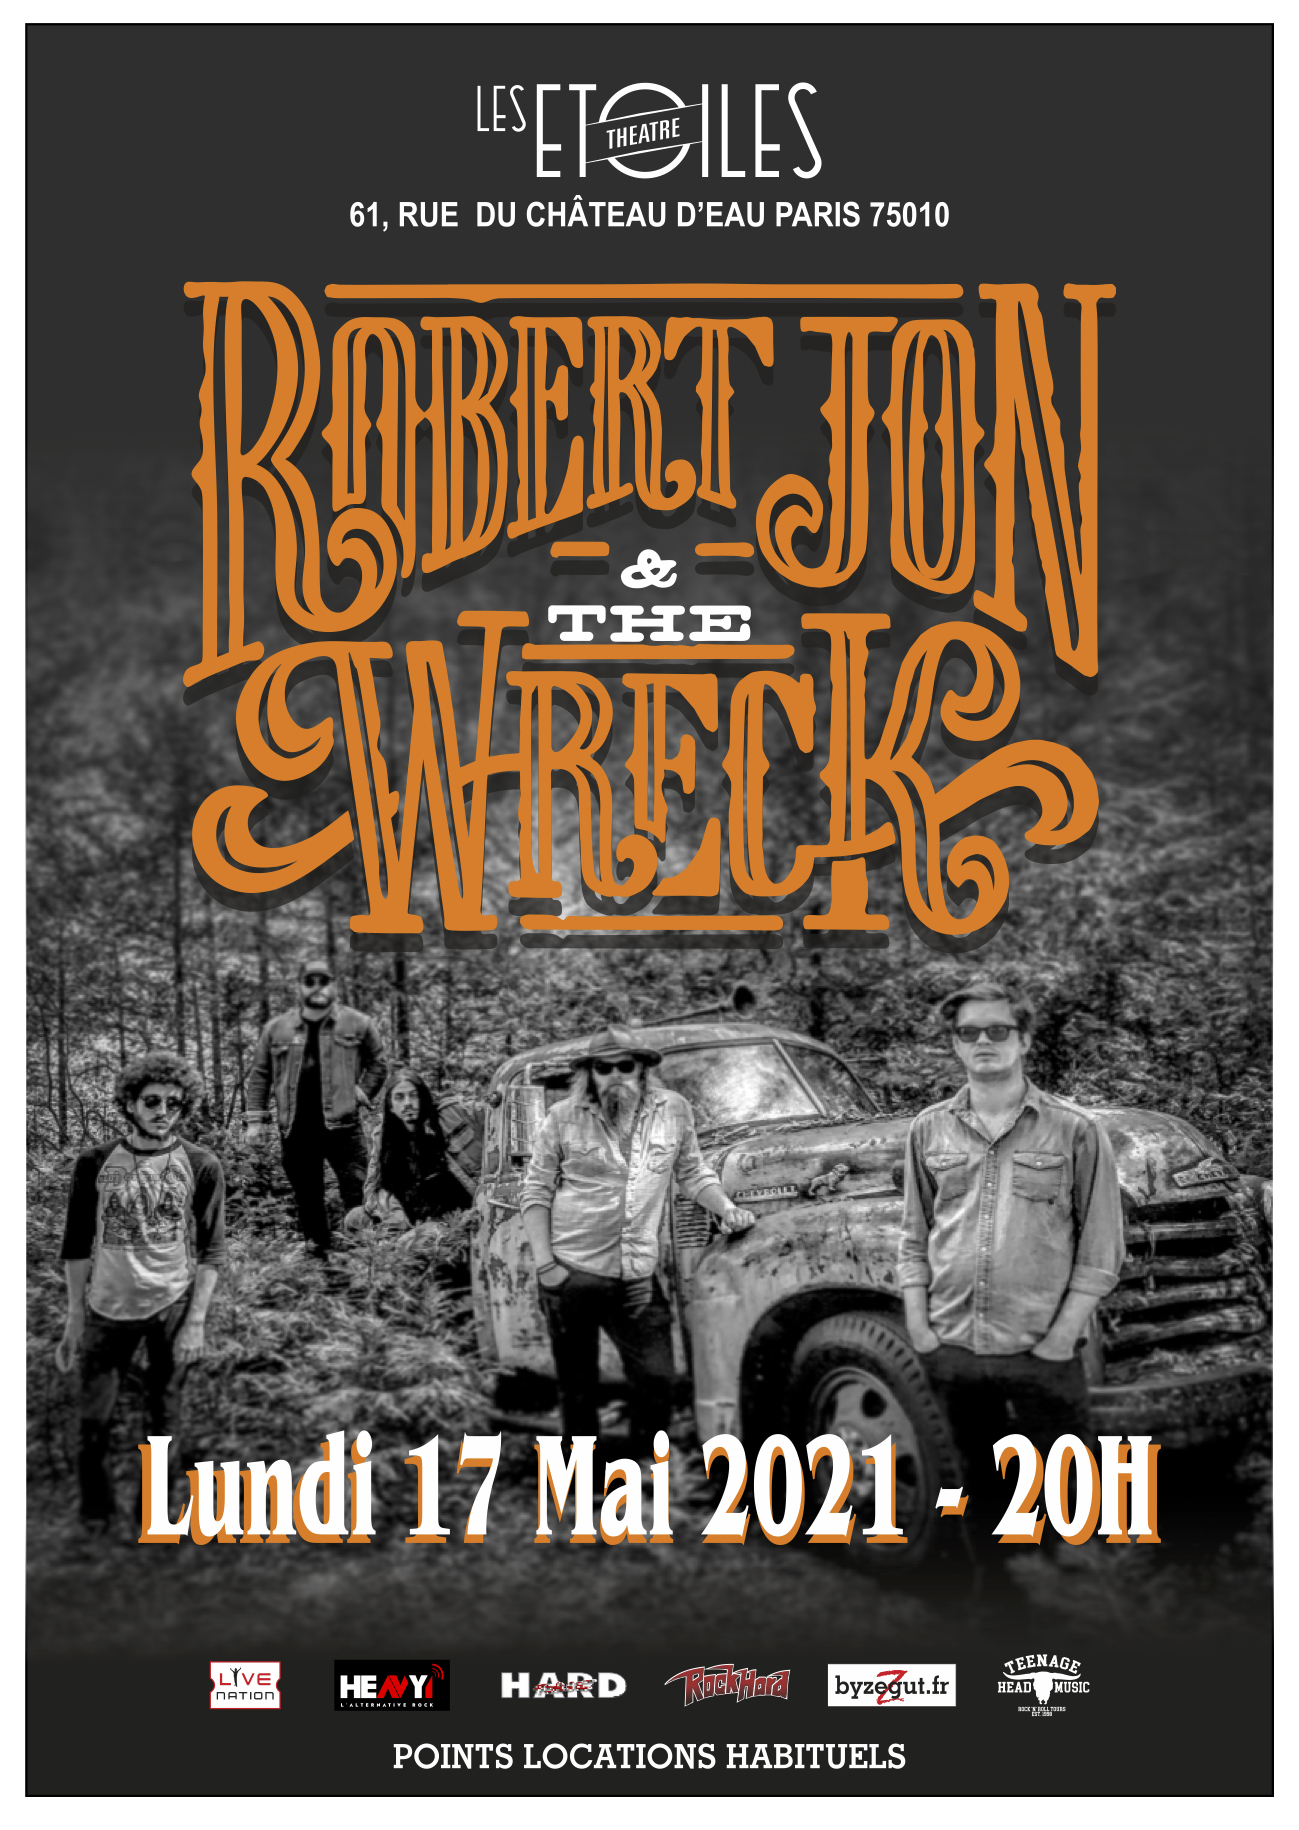 ROBERT JON AND THE WRECK en Concert